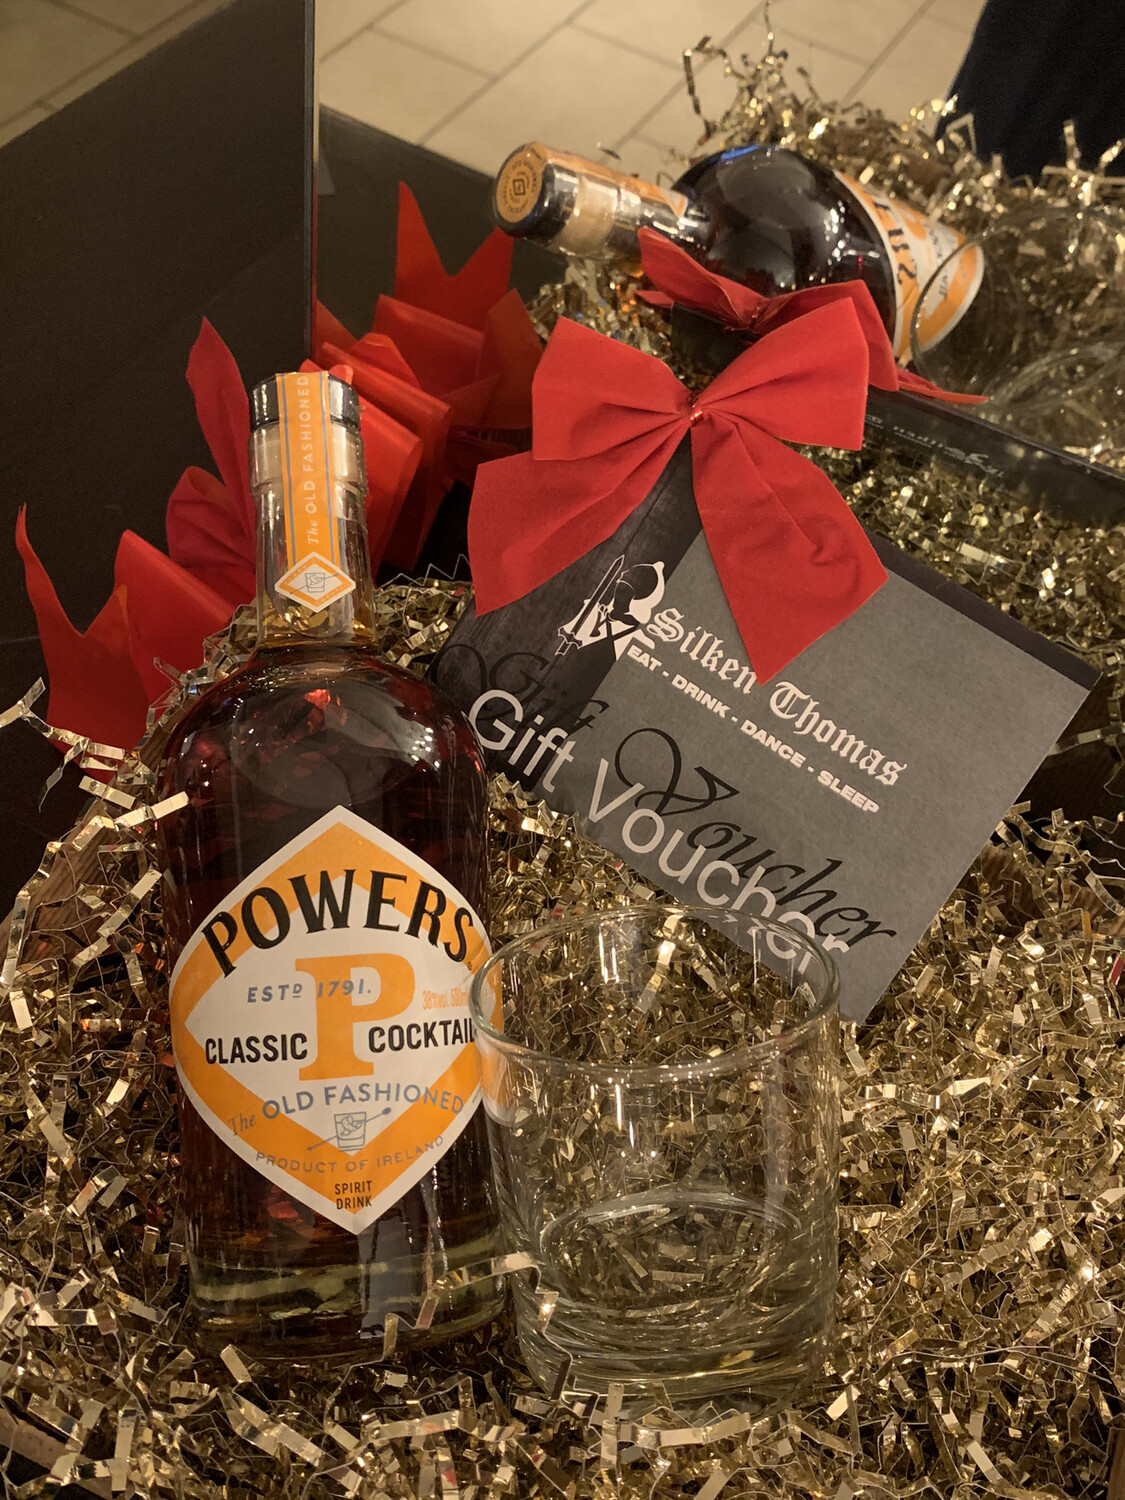 Powers Old Fashioned Hamper with Silken Thomas Voucher